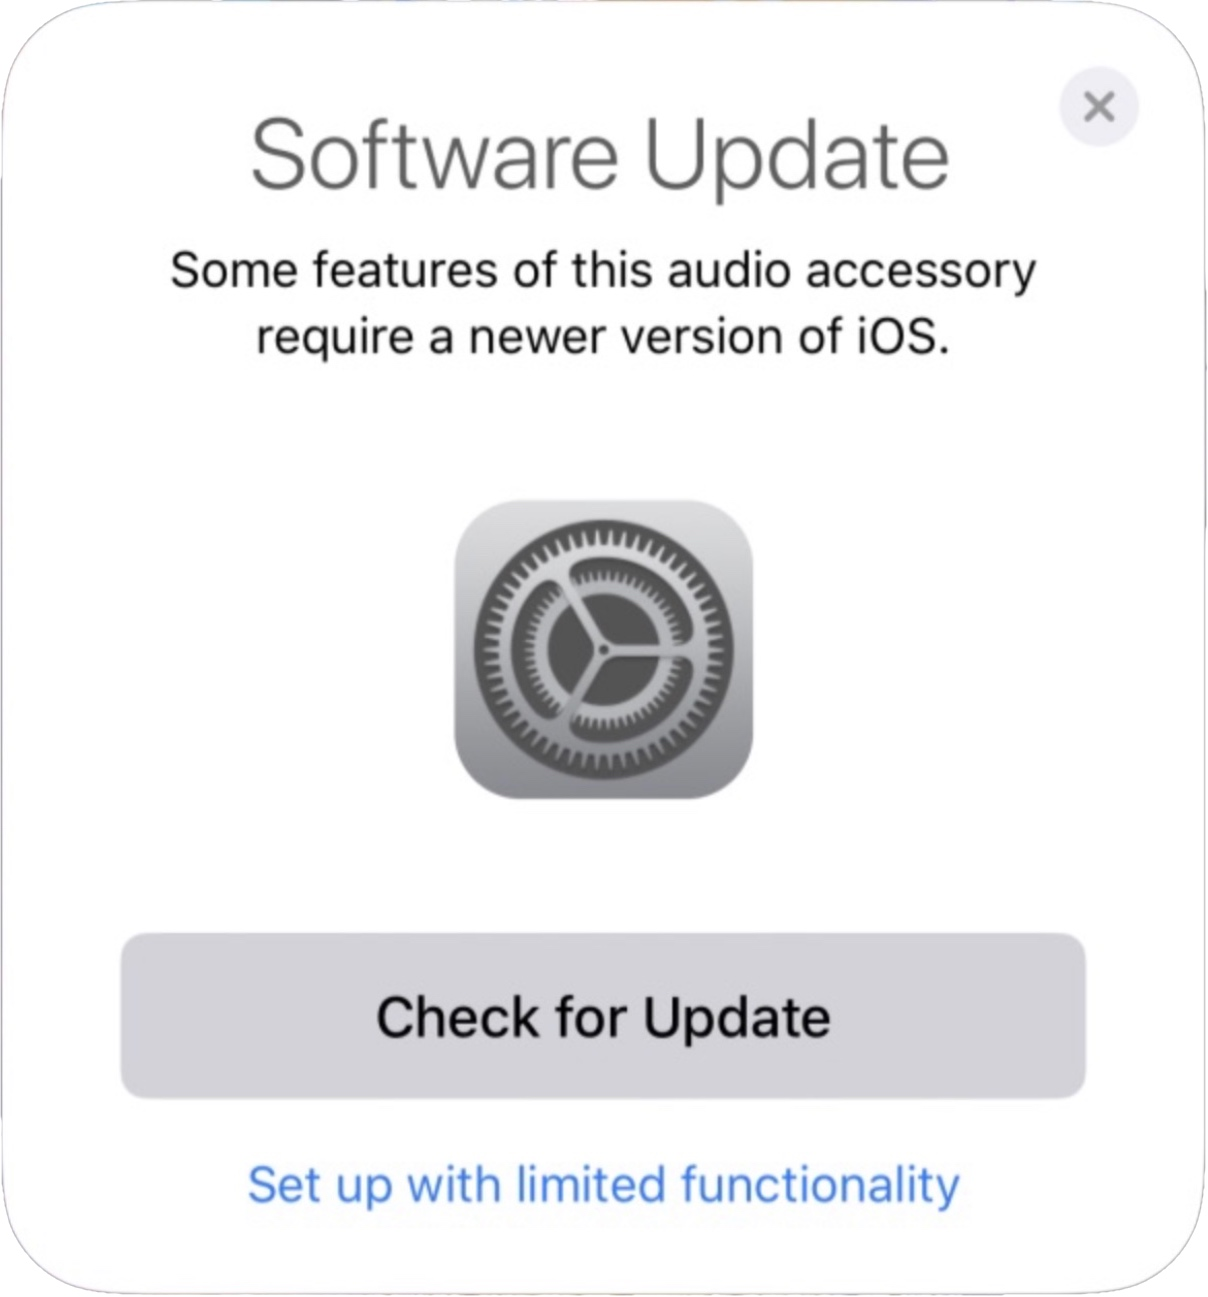 AirPods 2 will work on pre-iOS 12.2 firmware, albeit with 'limited' functionality